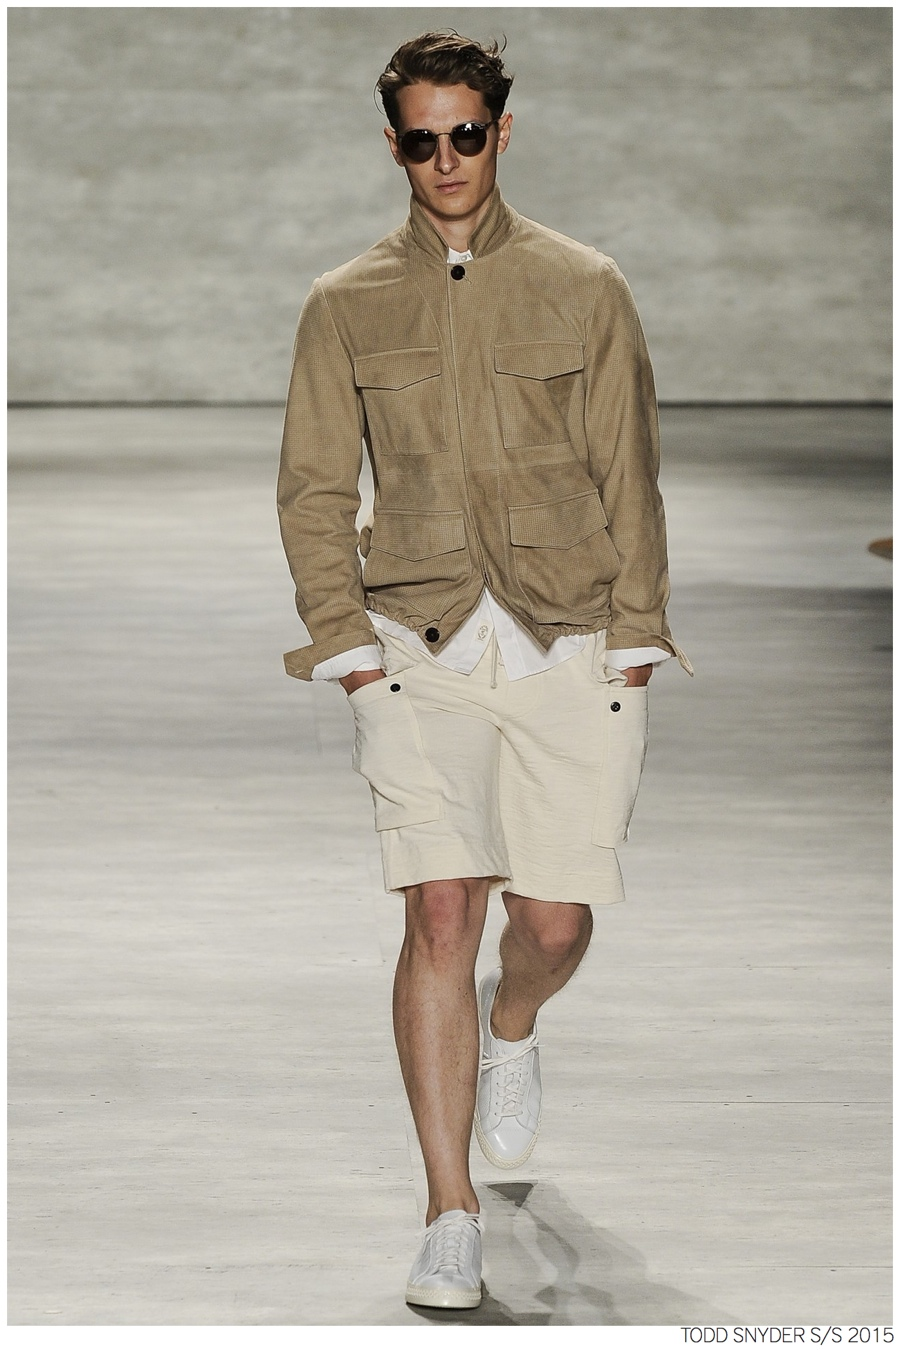 Todd Snyder Unveils Relaxed Spring/Summer 2015 Collection